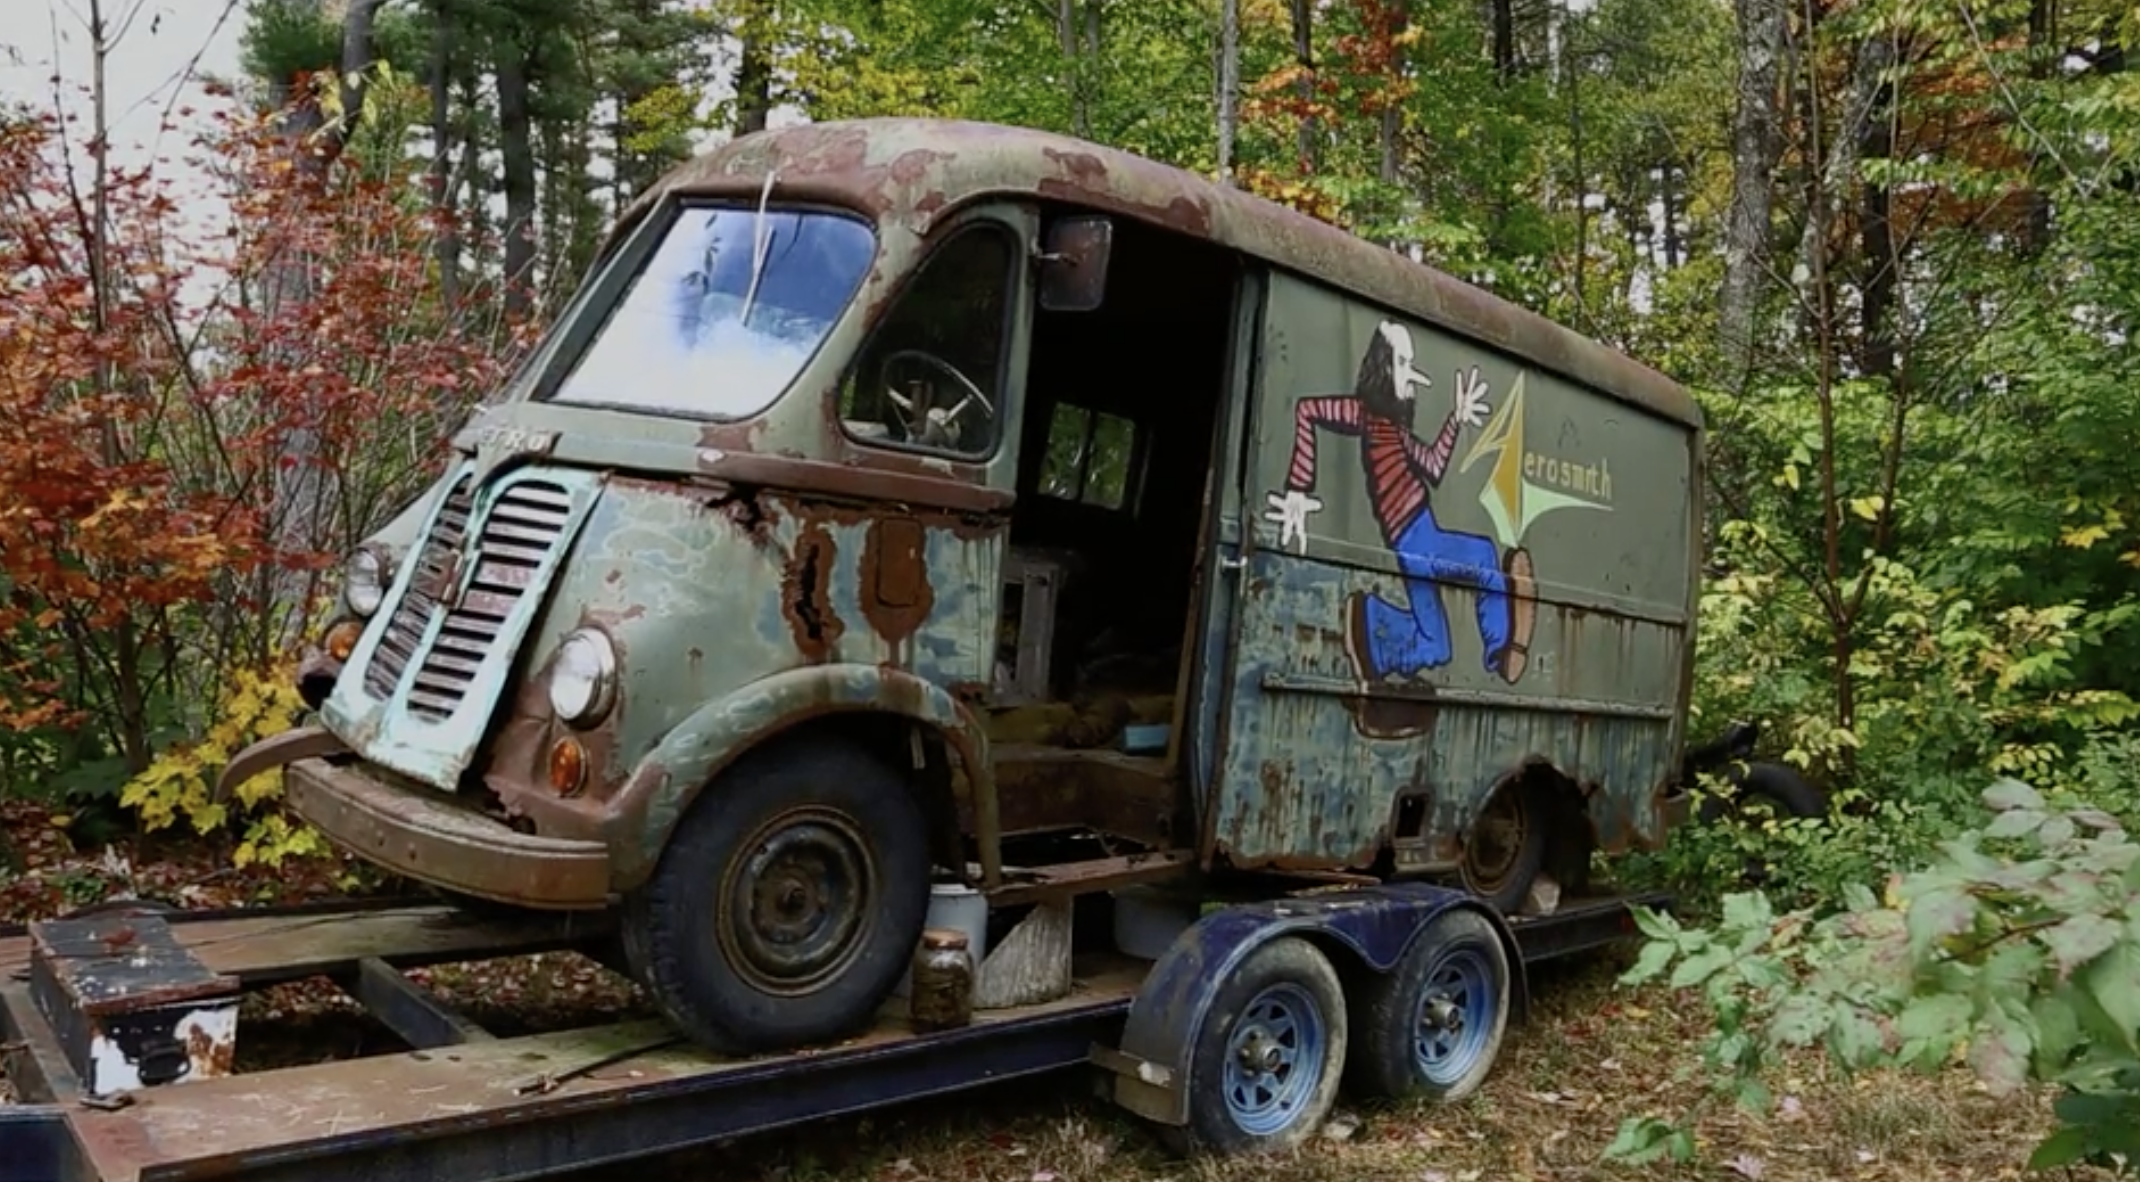 00c9b2ac0a Original Aerosmith tour van found in small Massachusetts town by